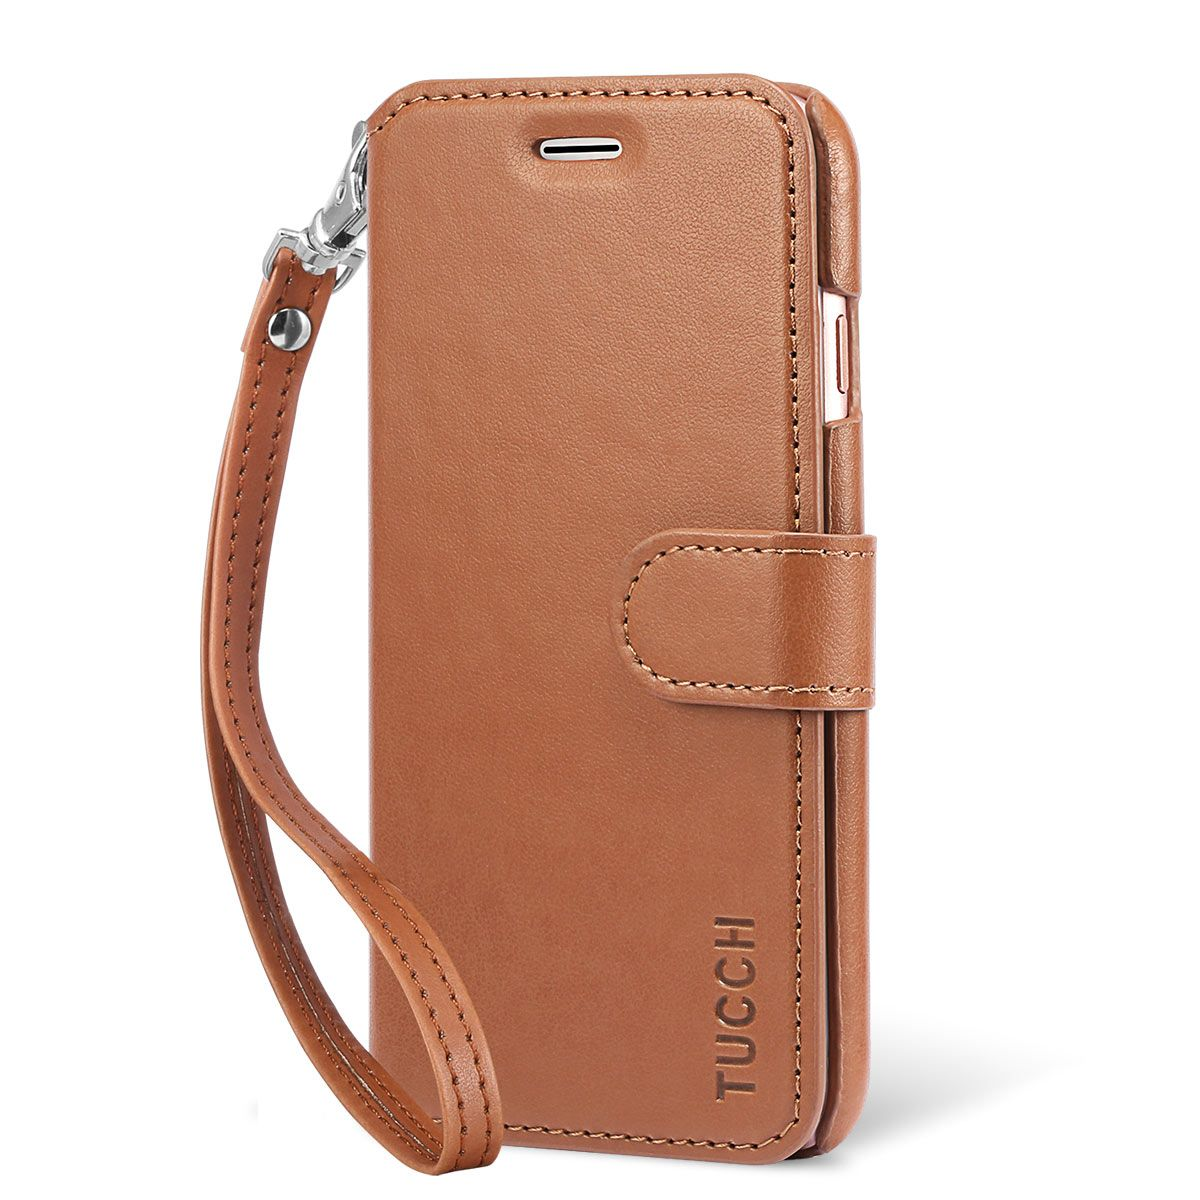 new styles a6946 975c7 TUCCH iPhone 7 PU Leather Wallet Phone Case, Wrist Strap, Magnetic Closure